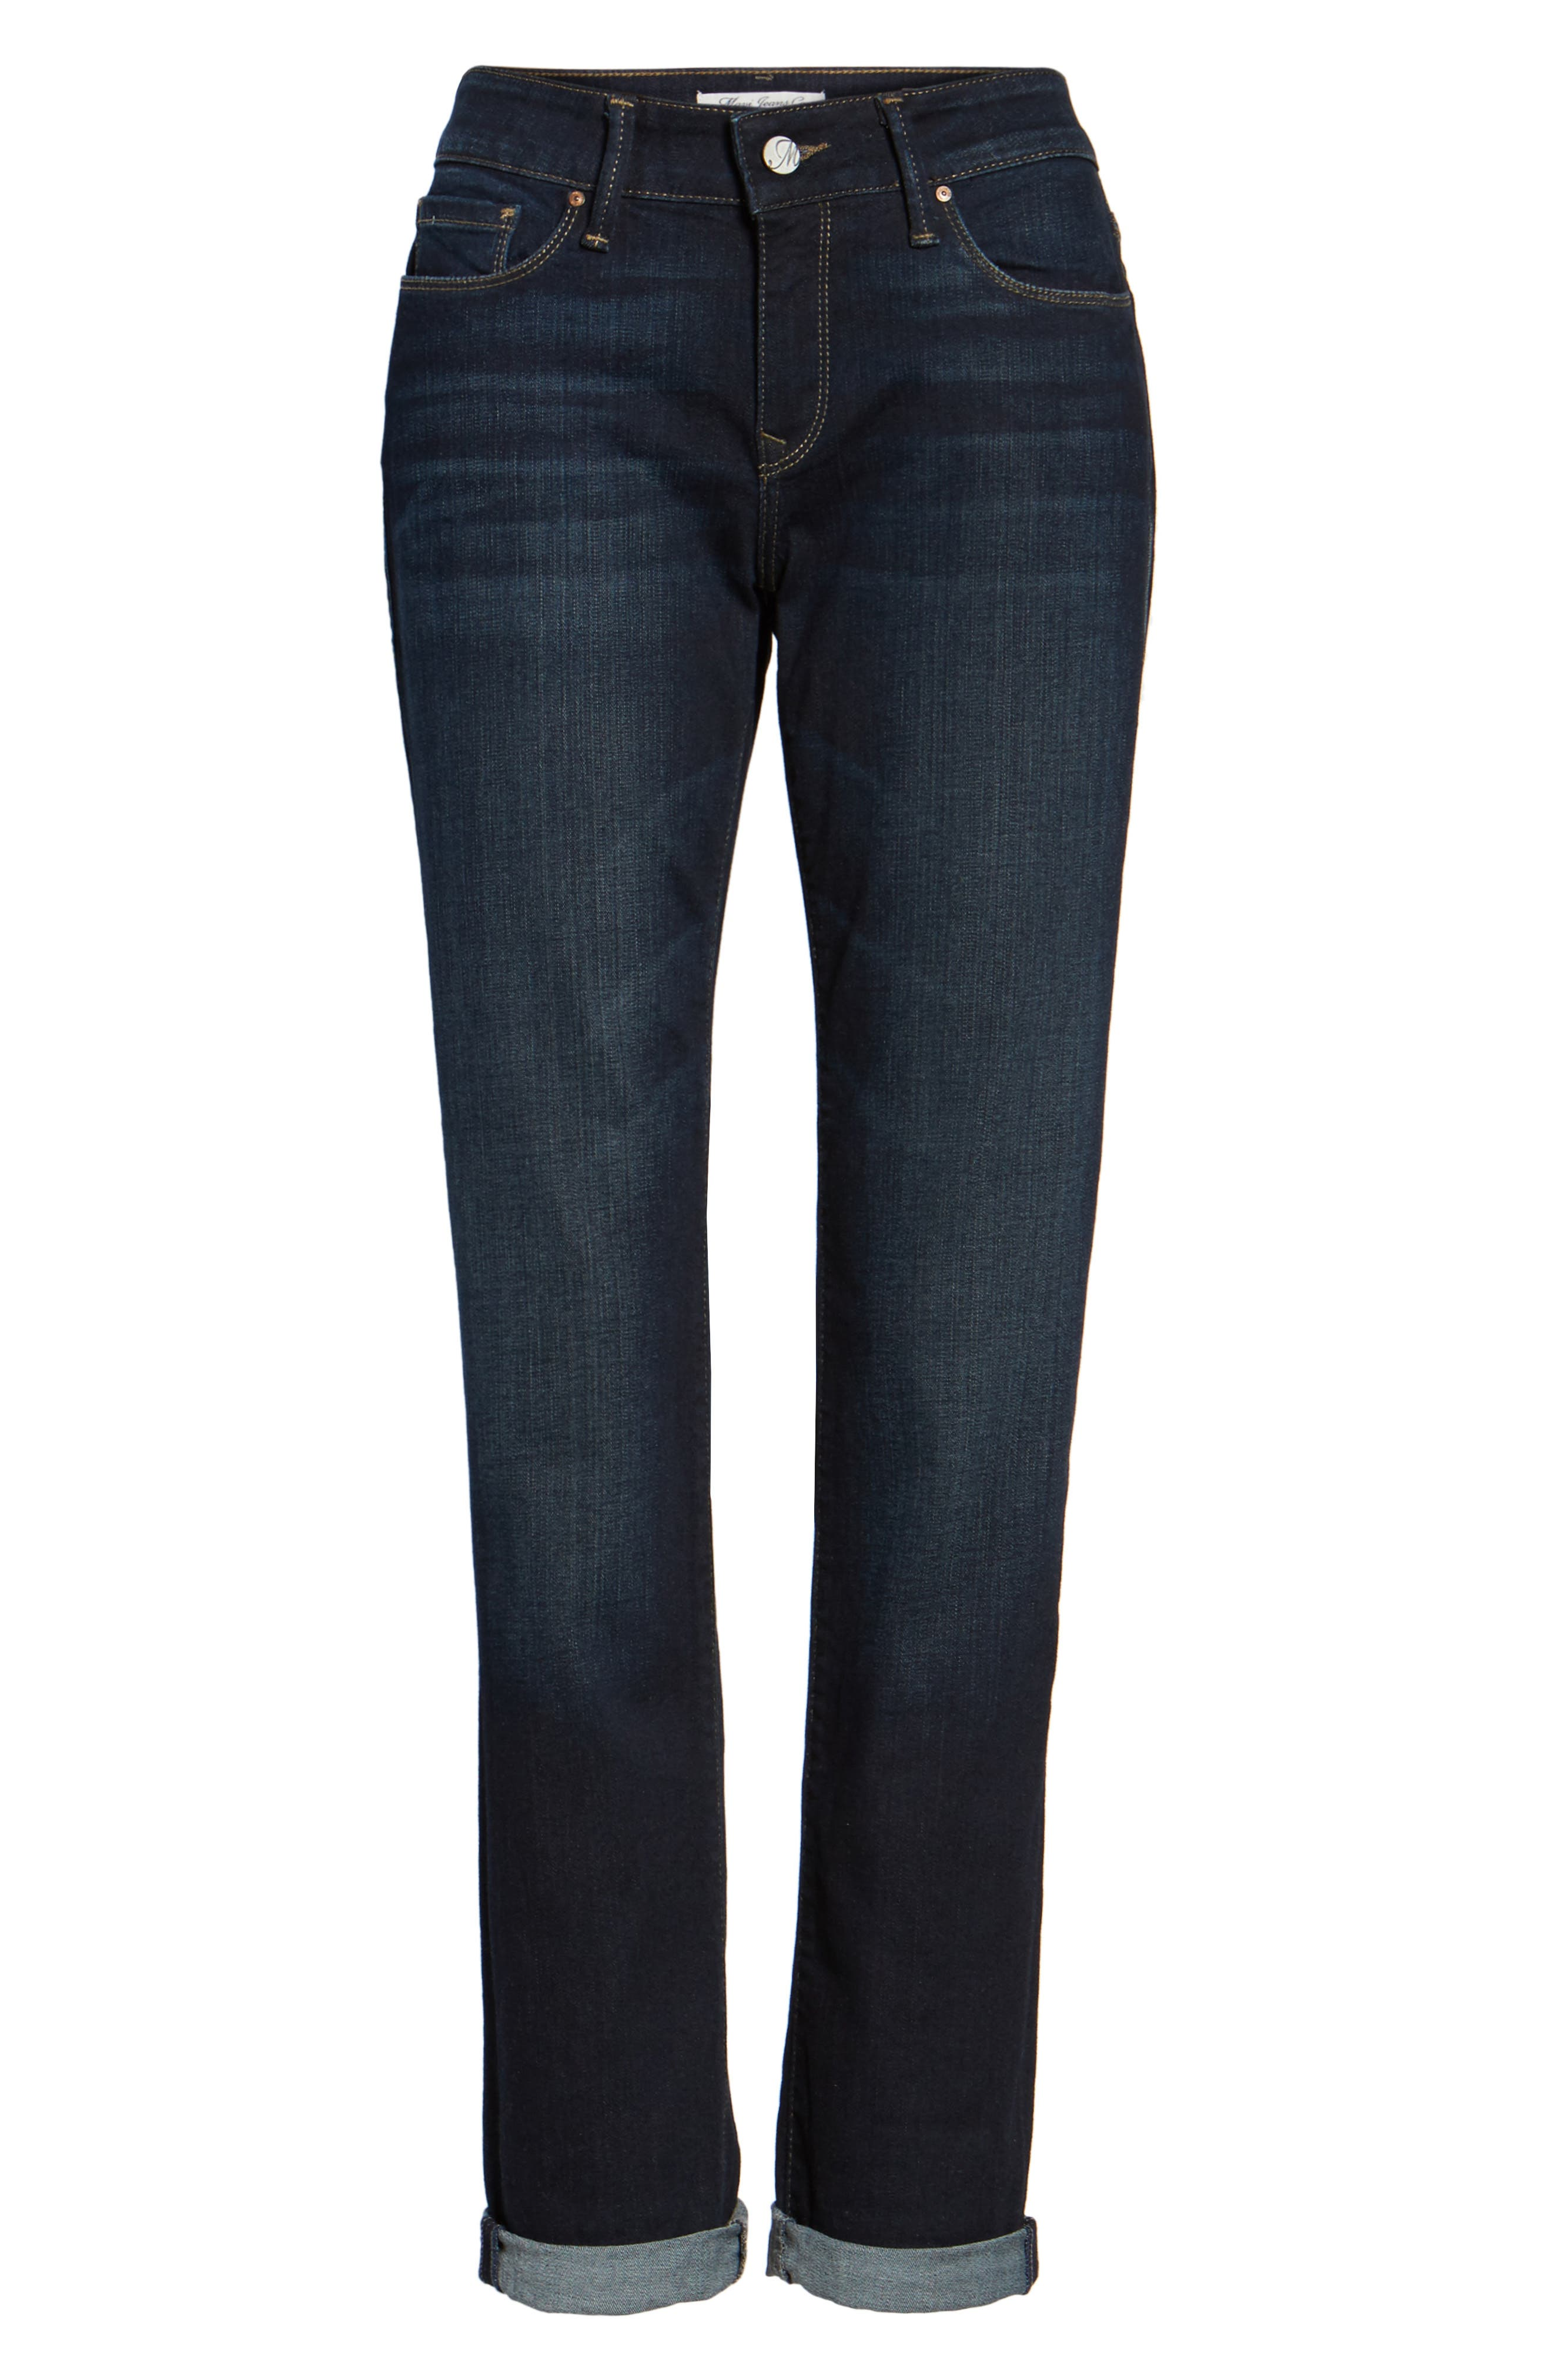 Emma Slim Boyfriend Jeans,                             Alternate thumbnail 6, color,                             DEEP BRUSHED TRIBECA